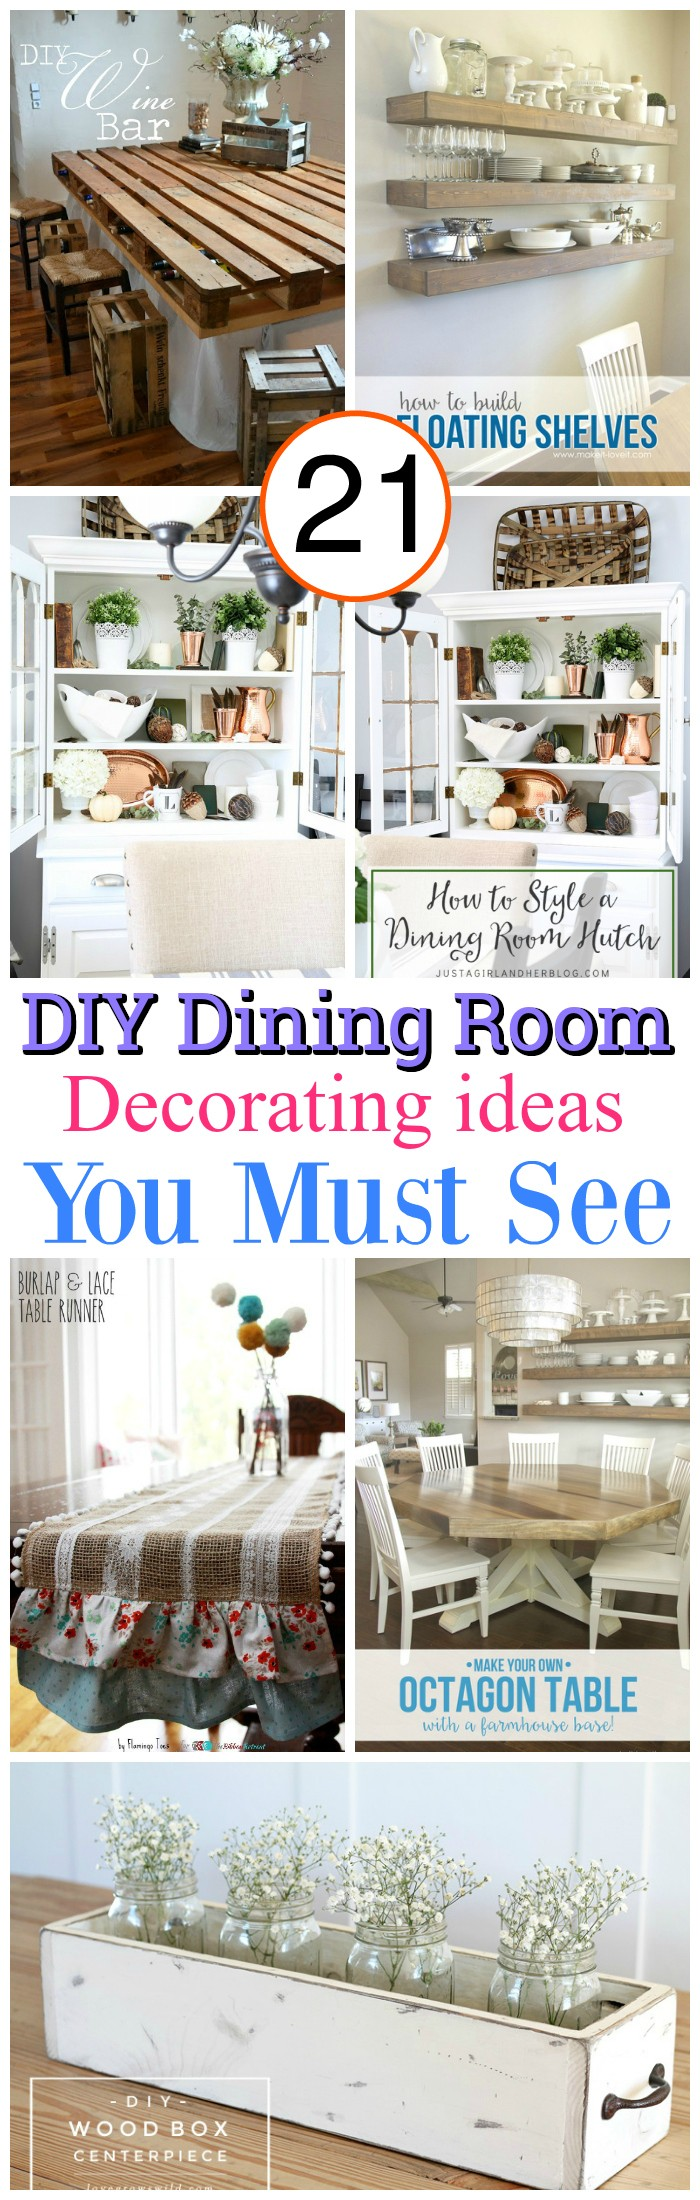 DIY Dining Room Decor 21 DIY Dining Room Decorating Ideas You Must See